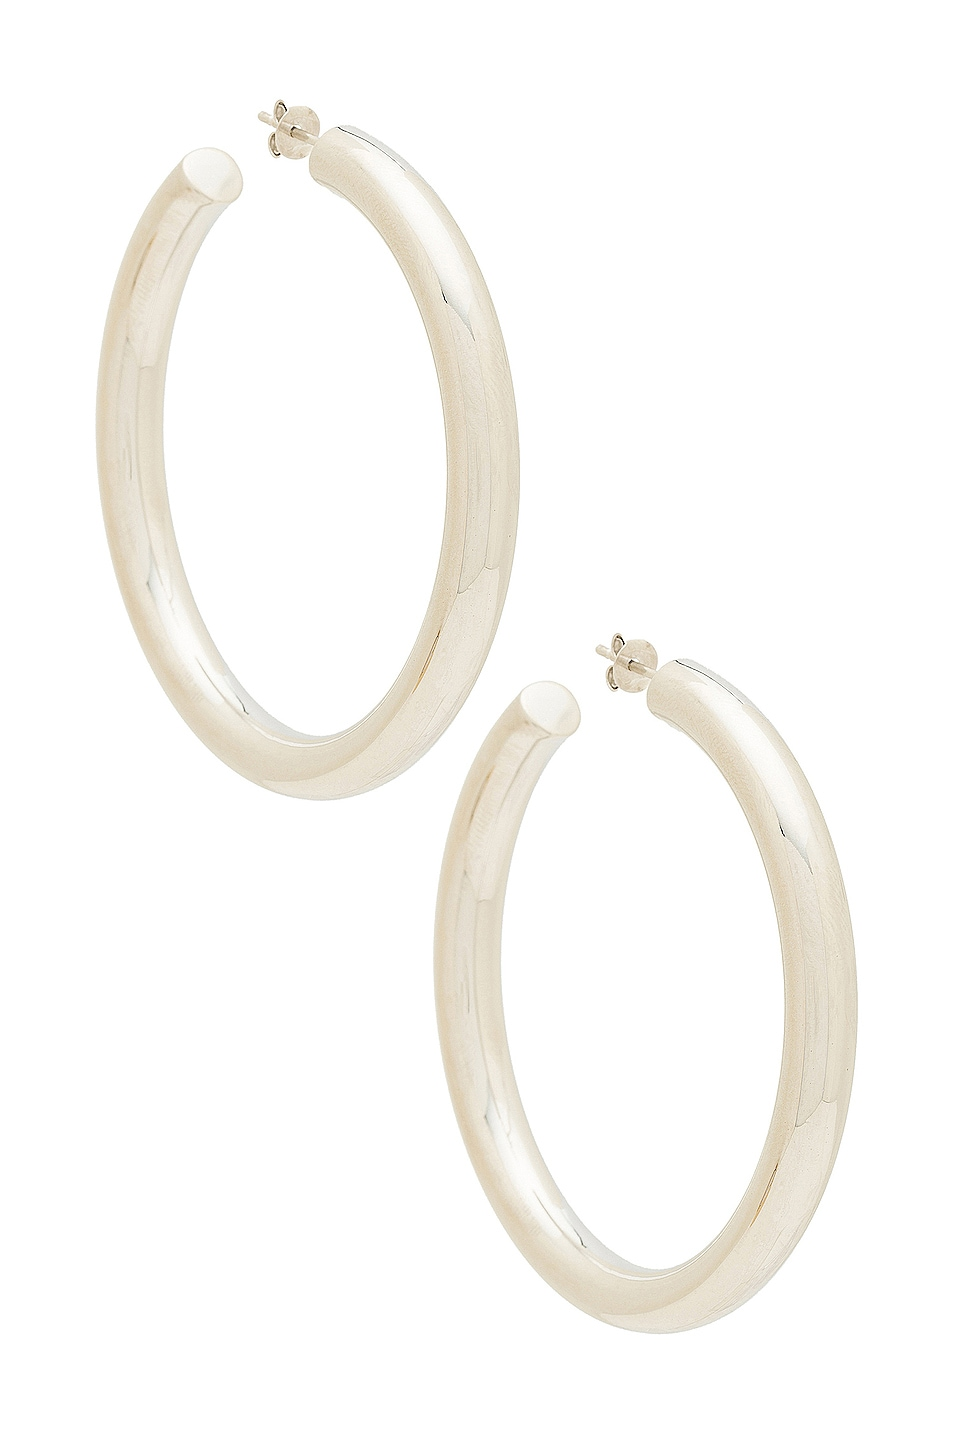 The M Jewelers NY BOUCLES D'OREILLES